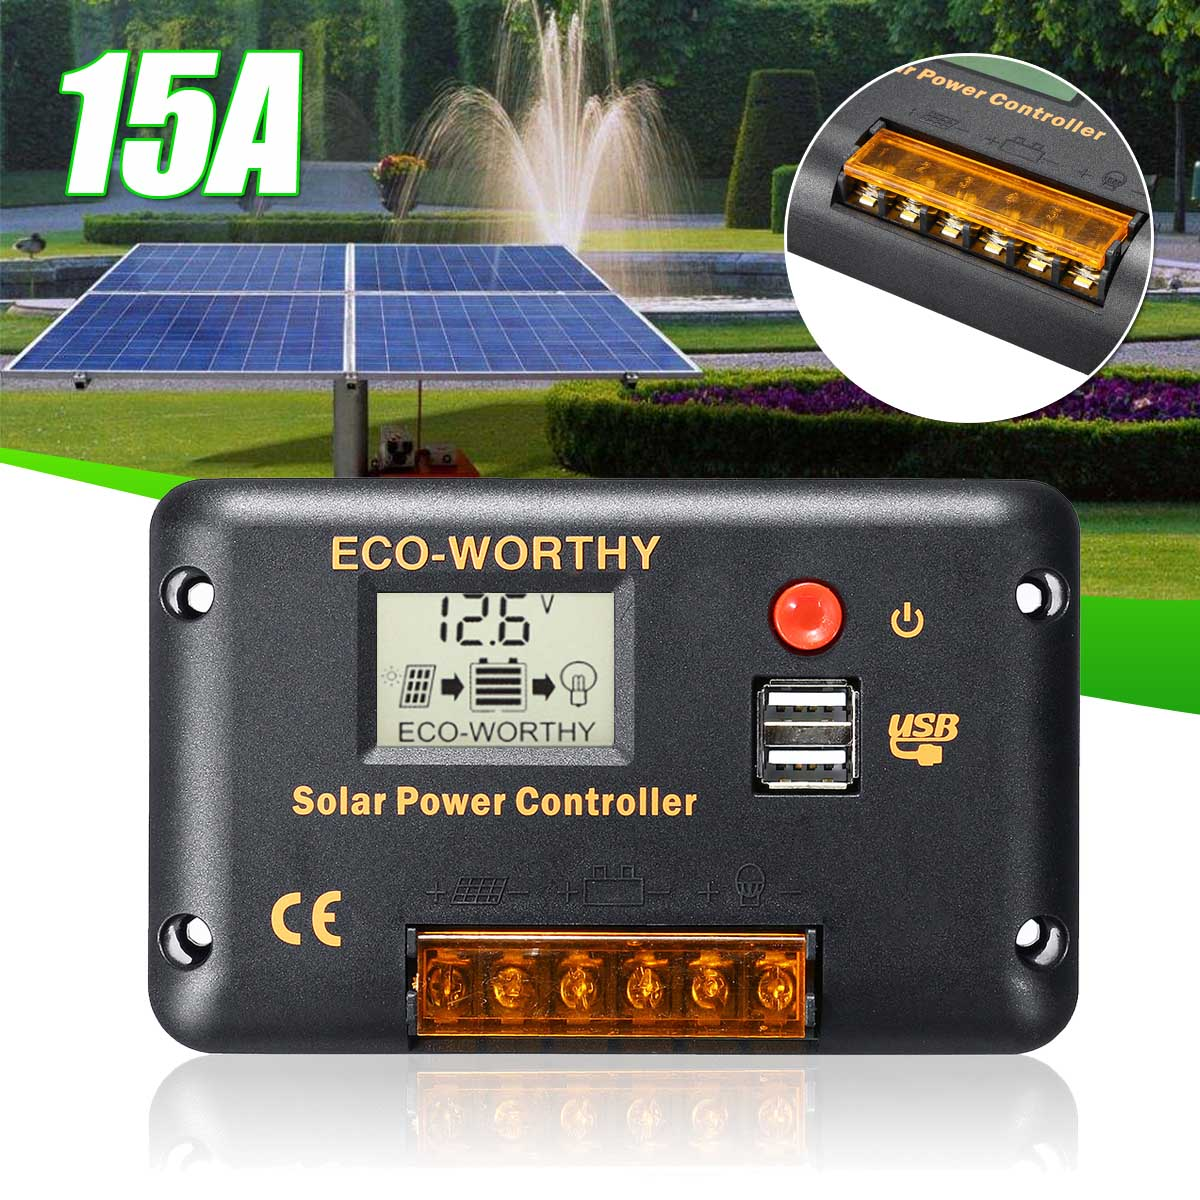 15A 12V/24V Auto Solar Charge Controllers With LCD Dual USB 5V Output Solar Cell Panel Regulator For PWM Solar Panel Water Pump15A 12V/24V Auto Solar Charge Controllers With LCD Dual USB 5V Output Solar Cell Panel Regulator For PWM Solar Panel Water Pump